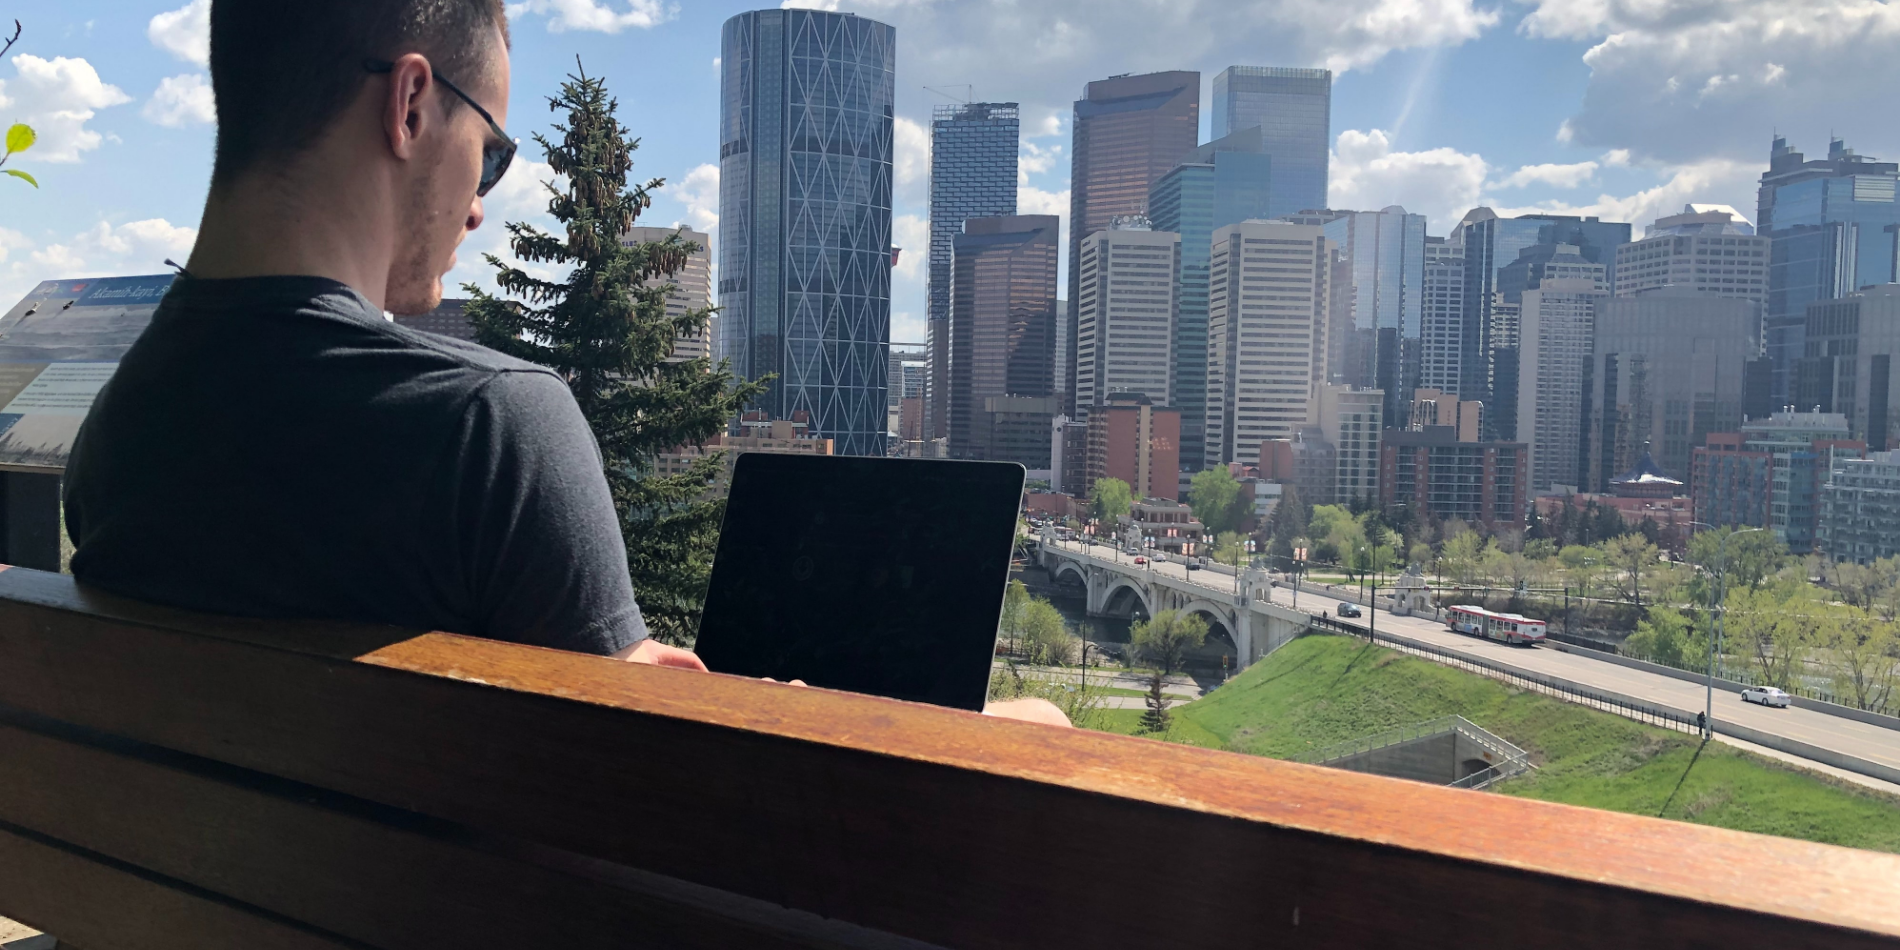 Working at computer outside